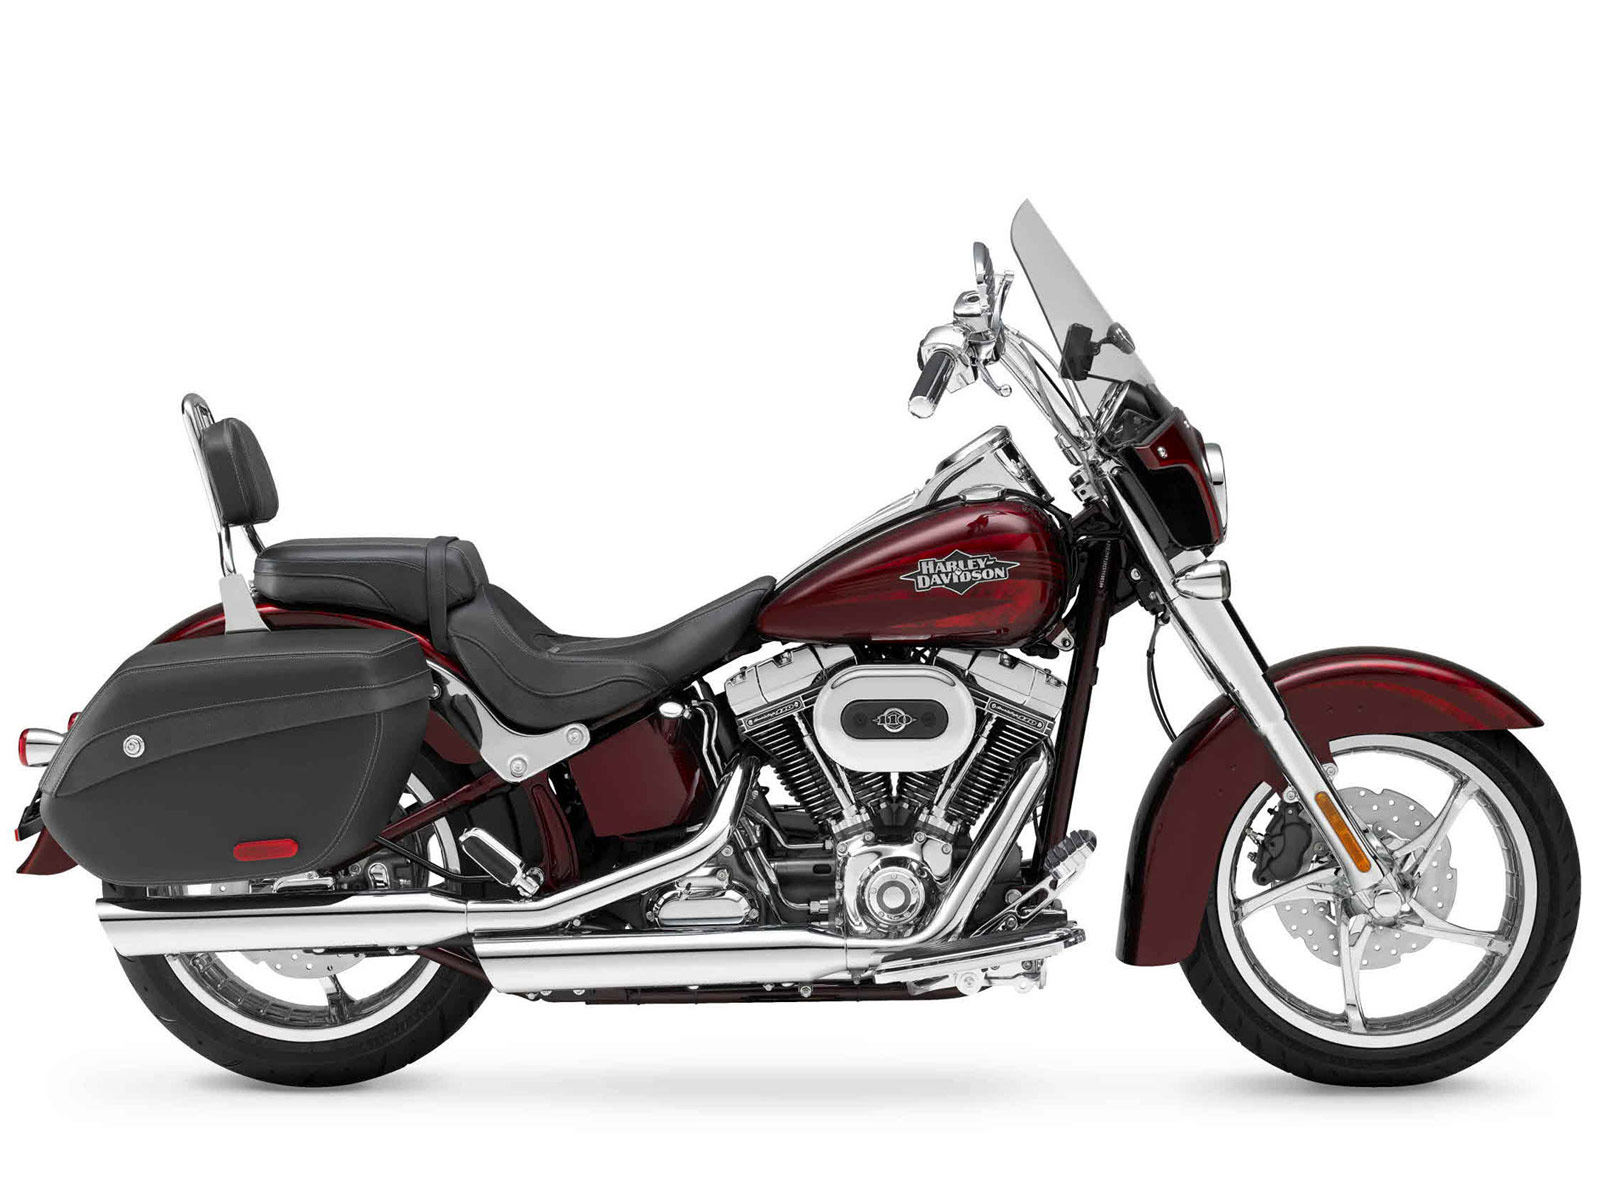 2018 Harley Davidson Motorcycles For Sale Texas >> Harley Davidson 2012 Cvo Softail Convertible For Sale | Autos Post